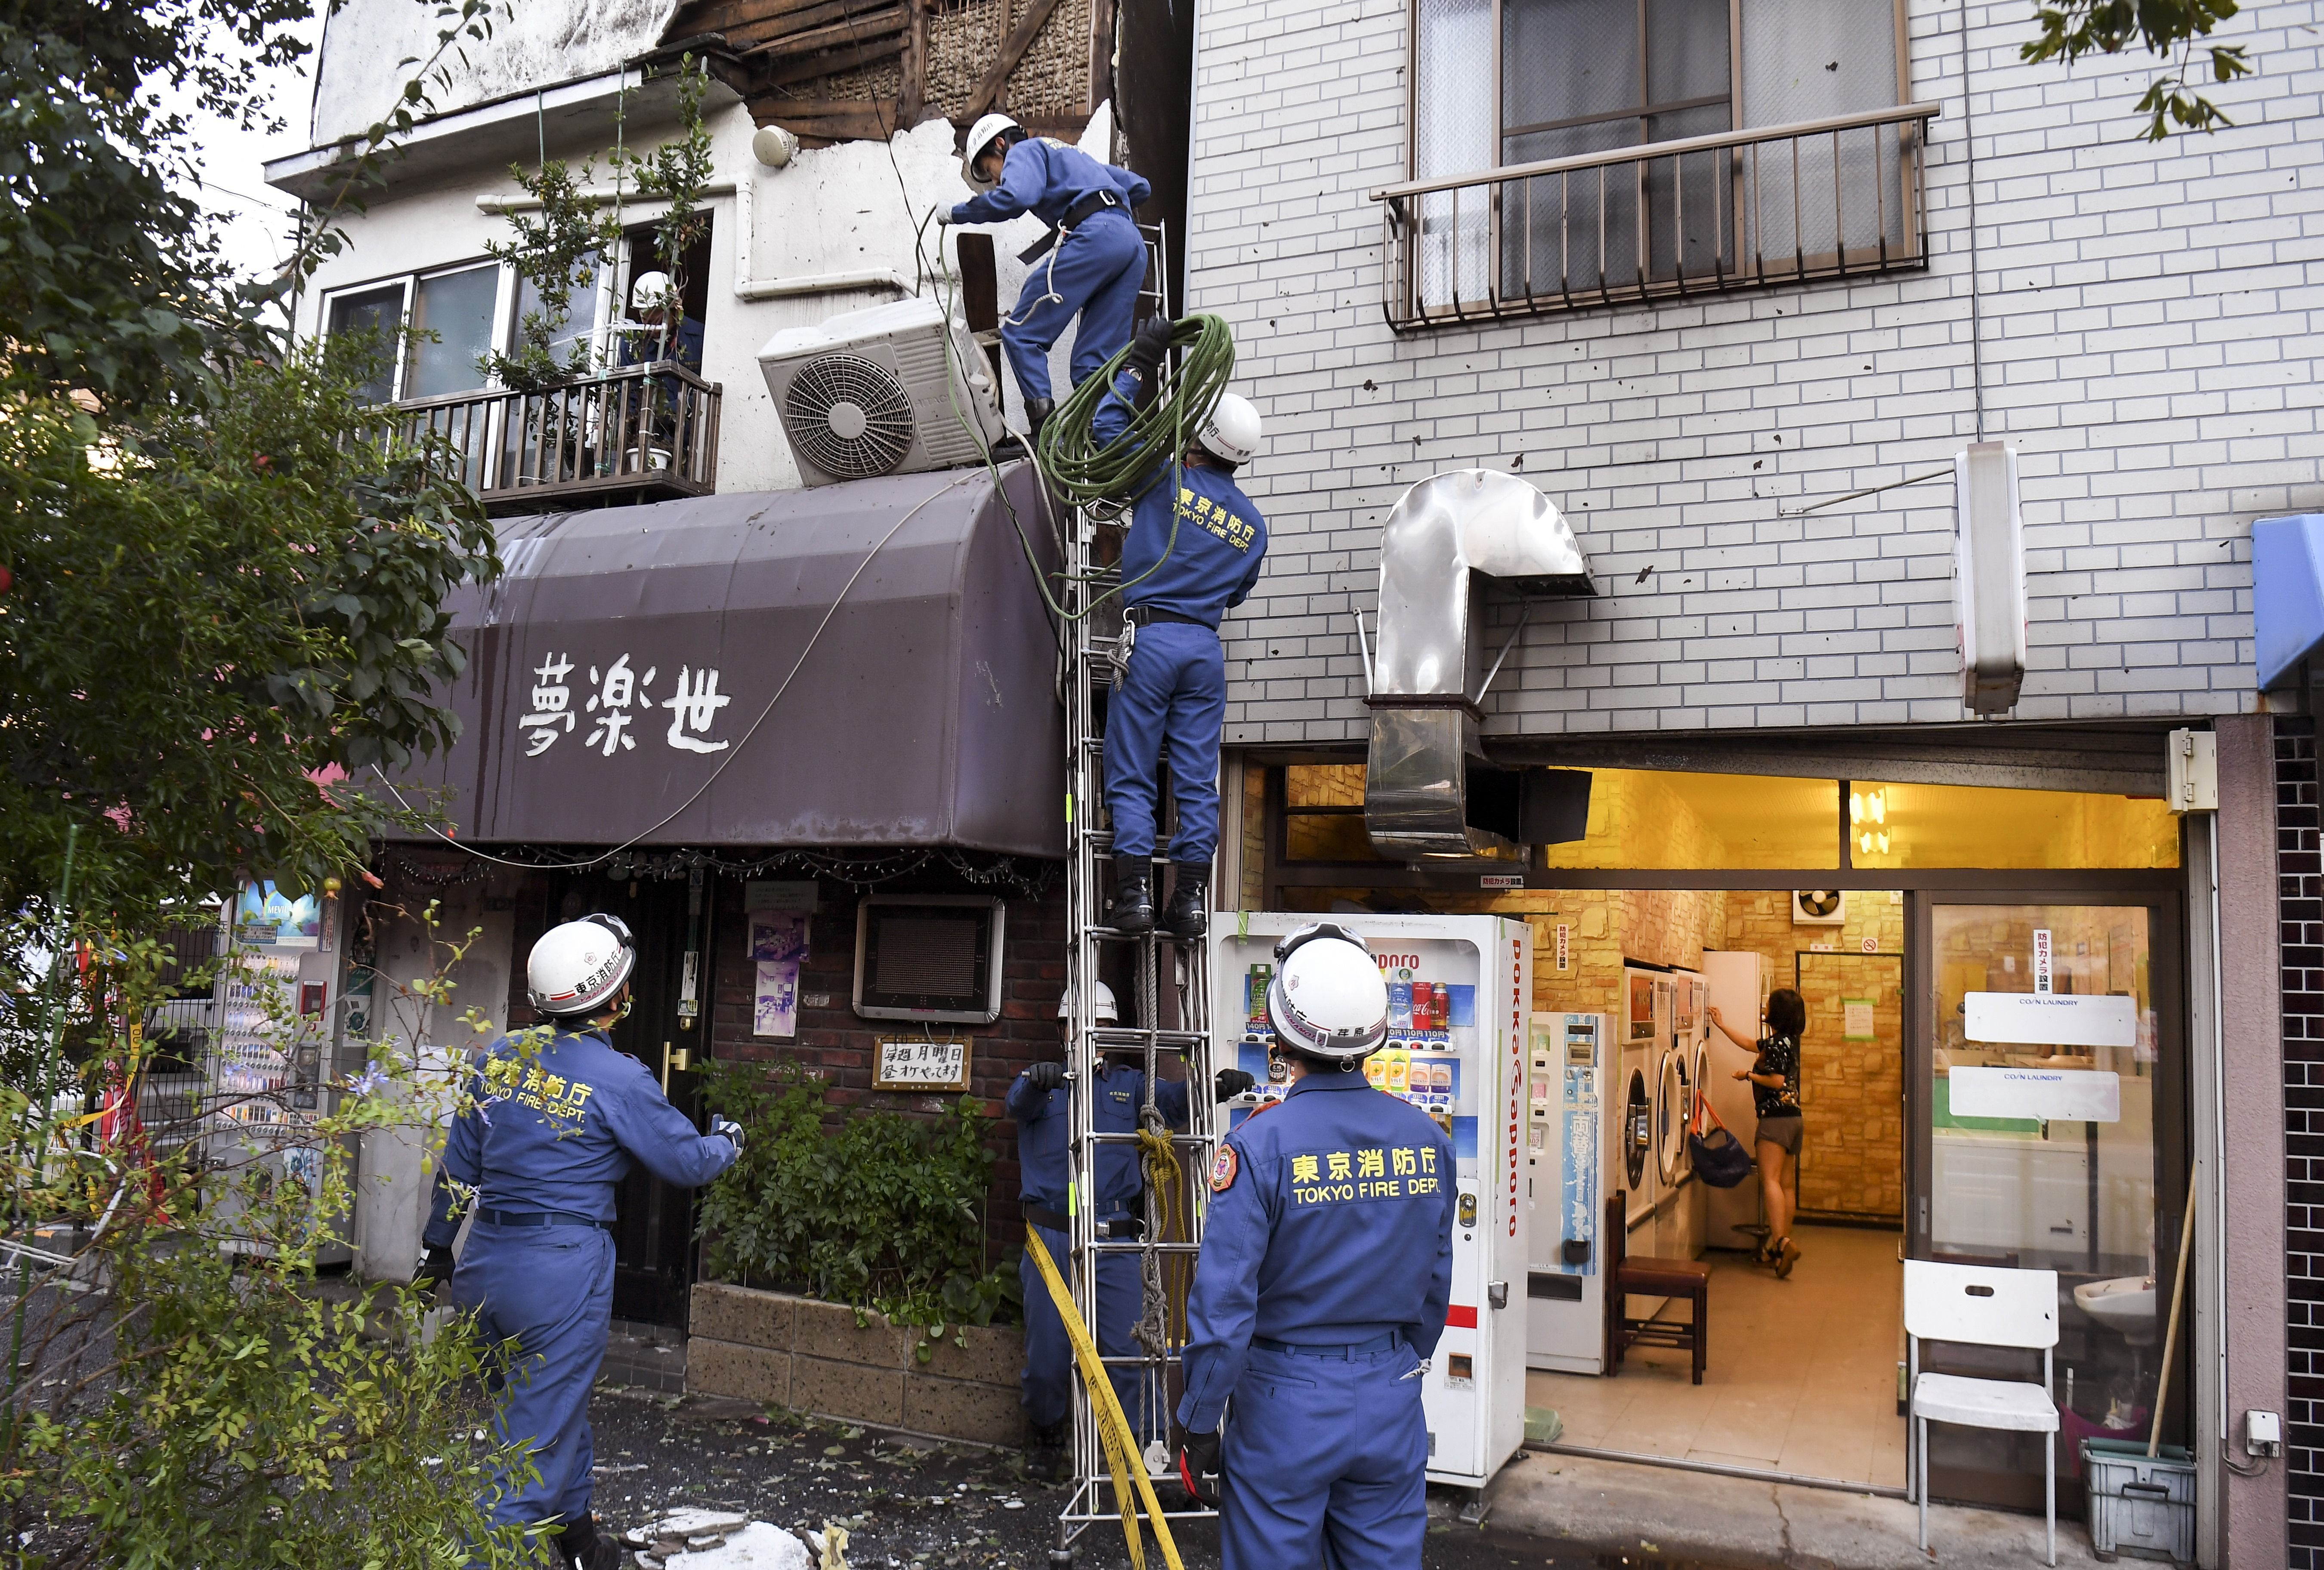 Tokyo Fire Department workers help repair damage in the aftermath of Typhoon Hagibis